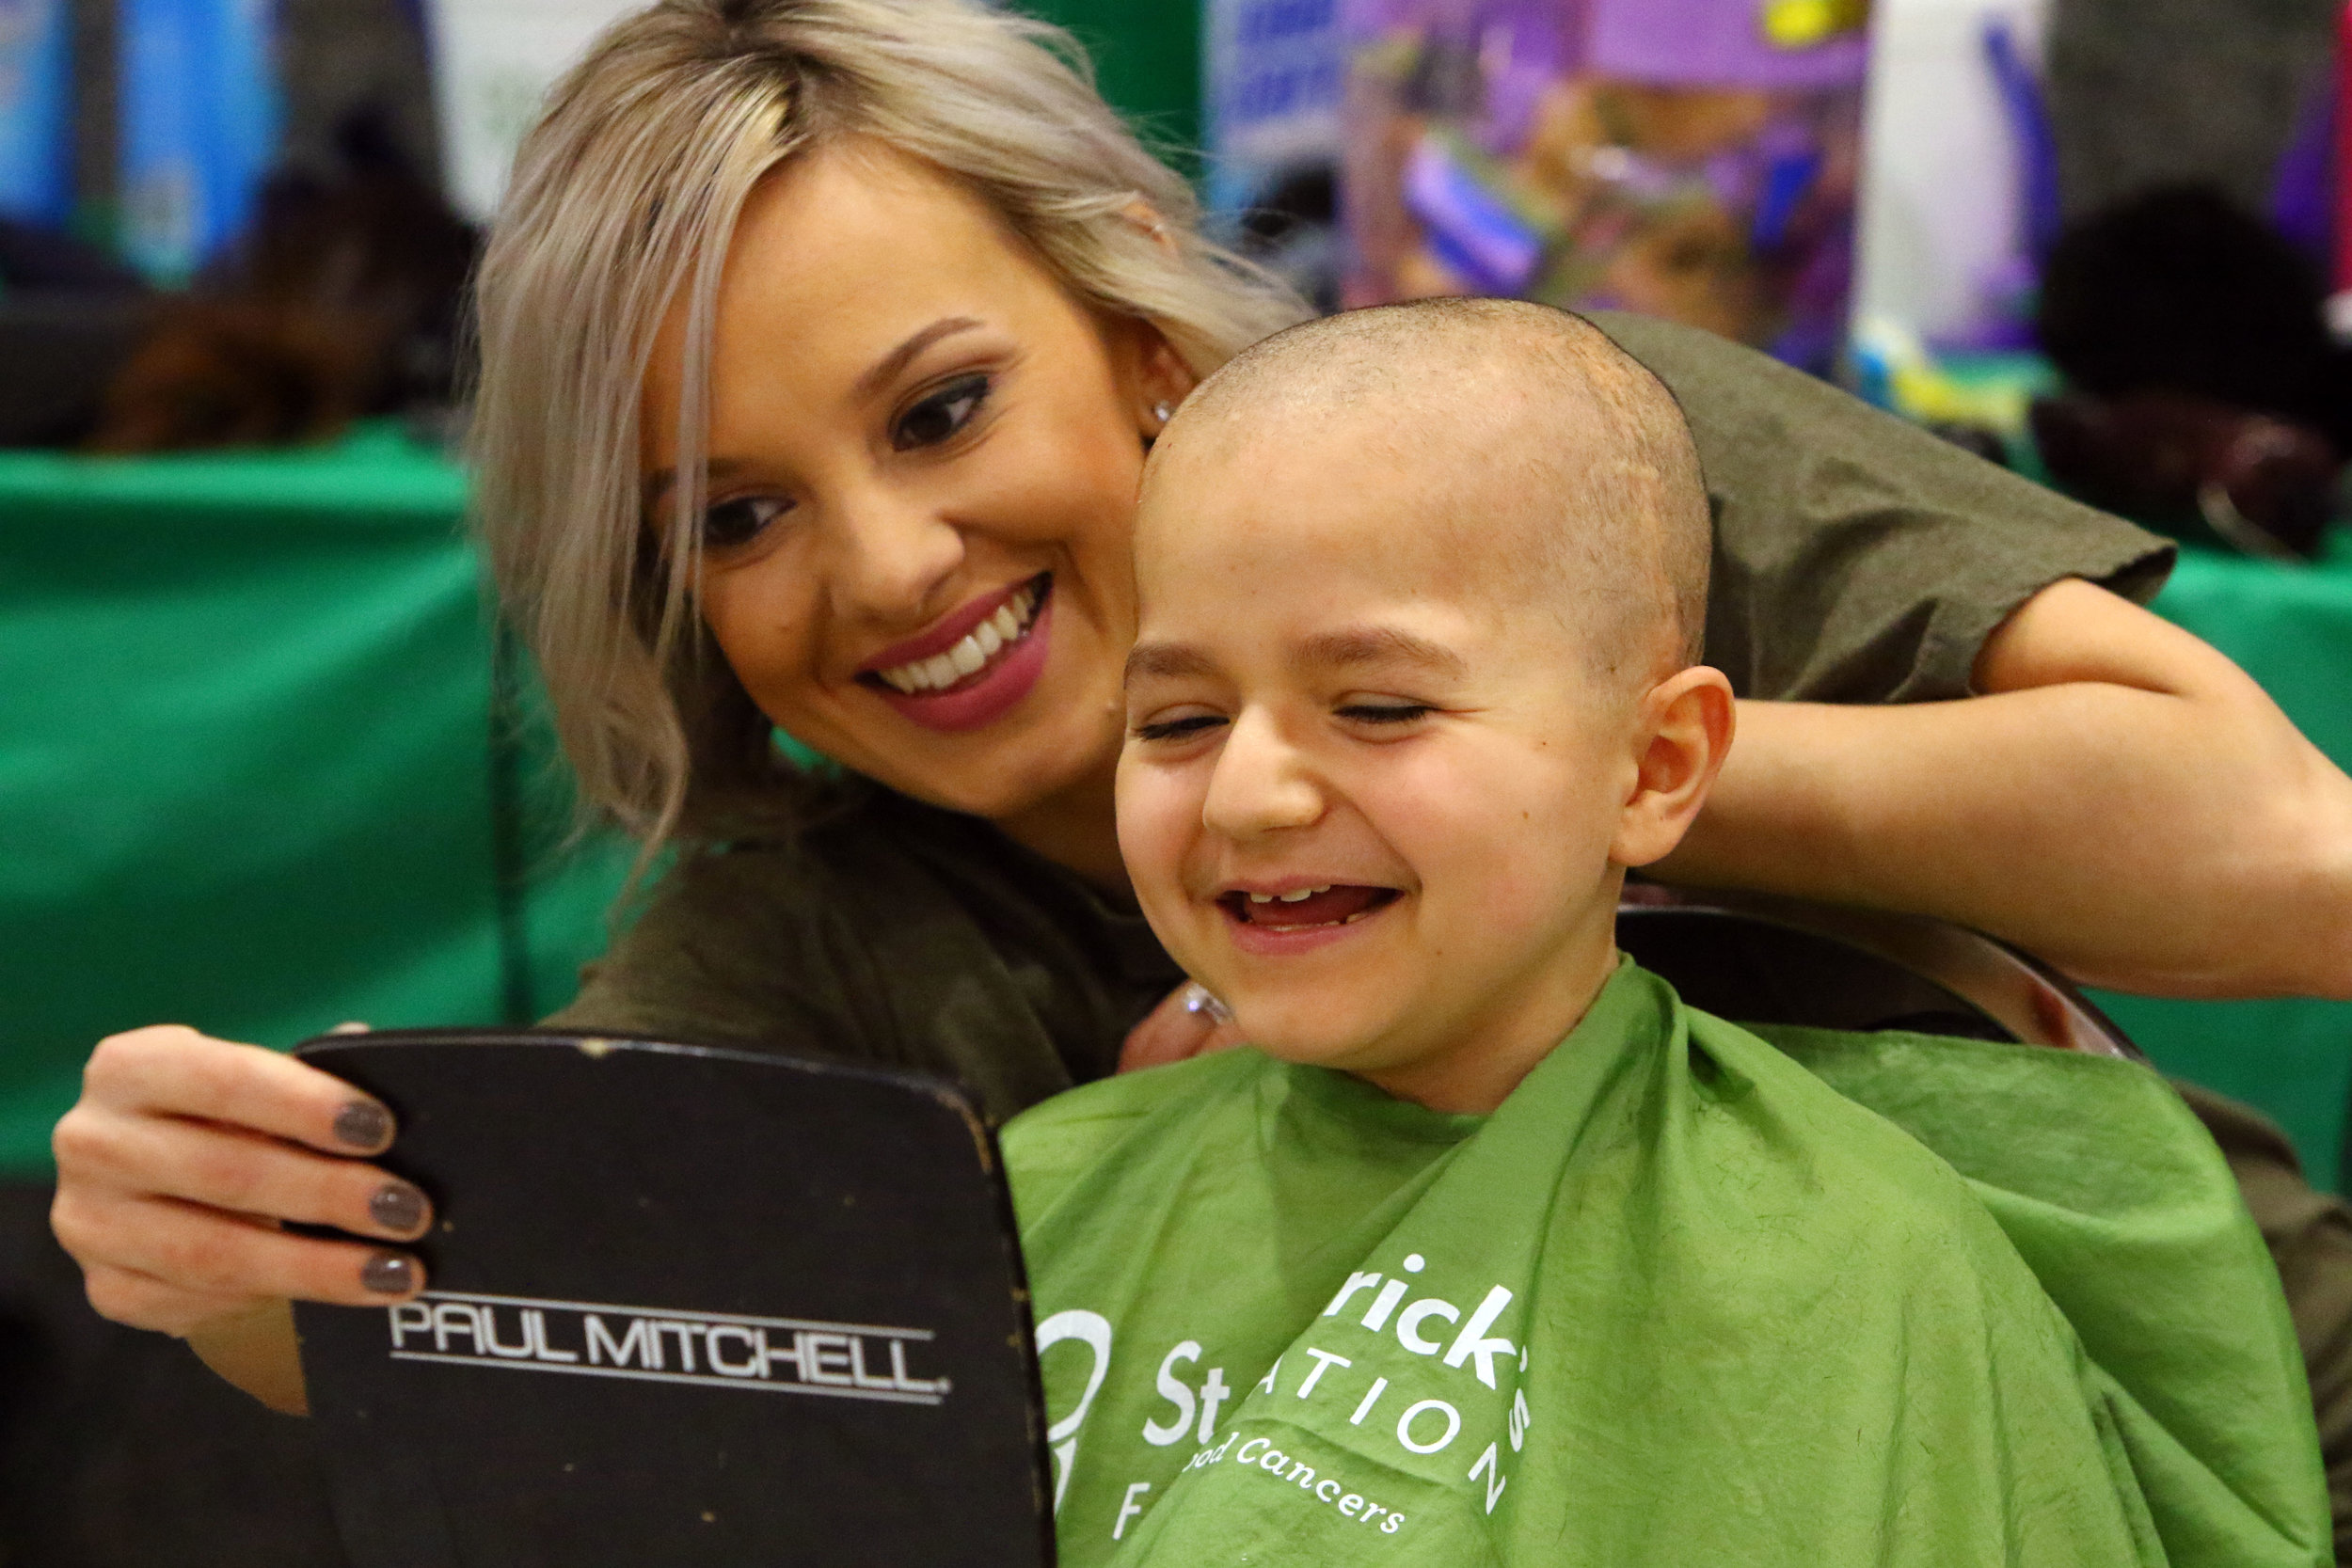 Michael Fogus, of Merrillville, checks out his reflection in the mirror after having his head shaved at the Northwest Indiana Cancer Kids Foundation 7th annual St. Baldrick's event in Merrillville. Fogus is a two-time brain cancer survivor. His family attended together to all go bald.